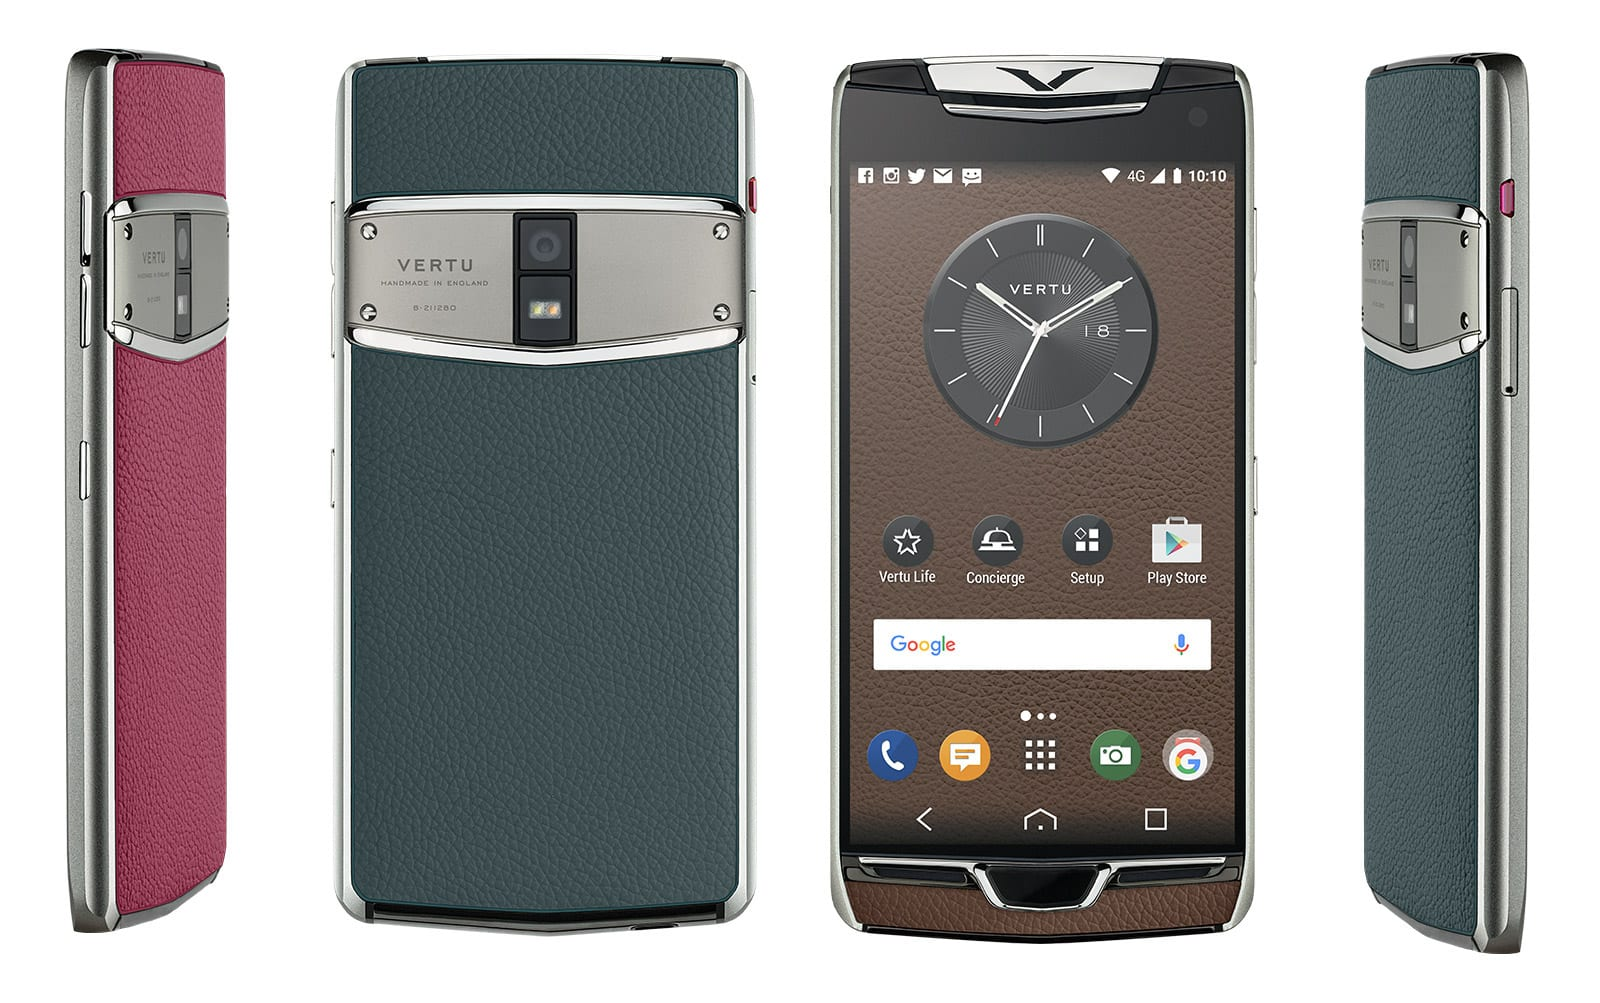 468bfe6c95c Vertu s latest luxury Android phone is built for jetsetters